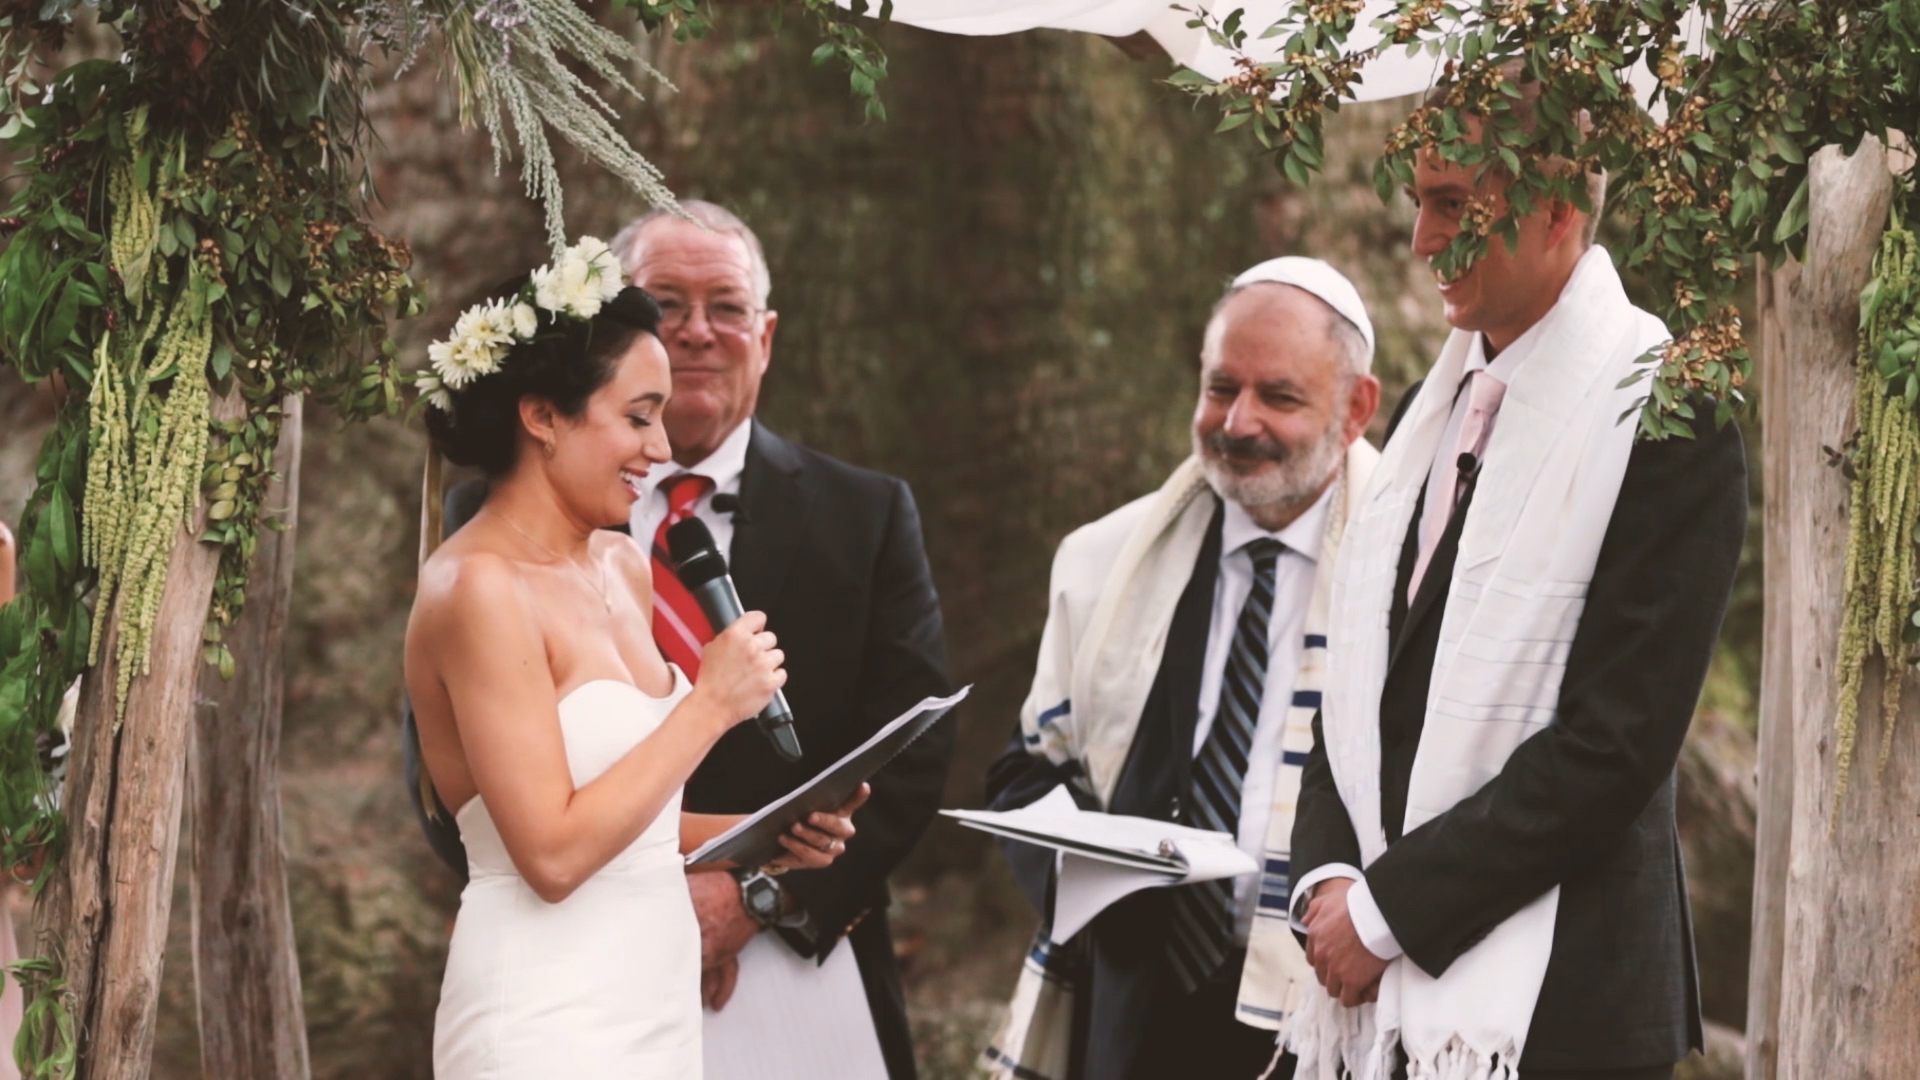 Watch Jacqueline and Michael's Bride Film  HERE .